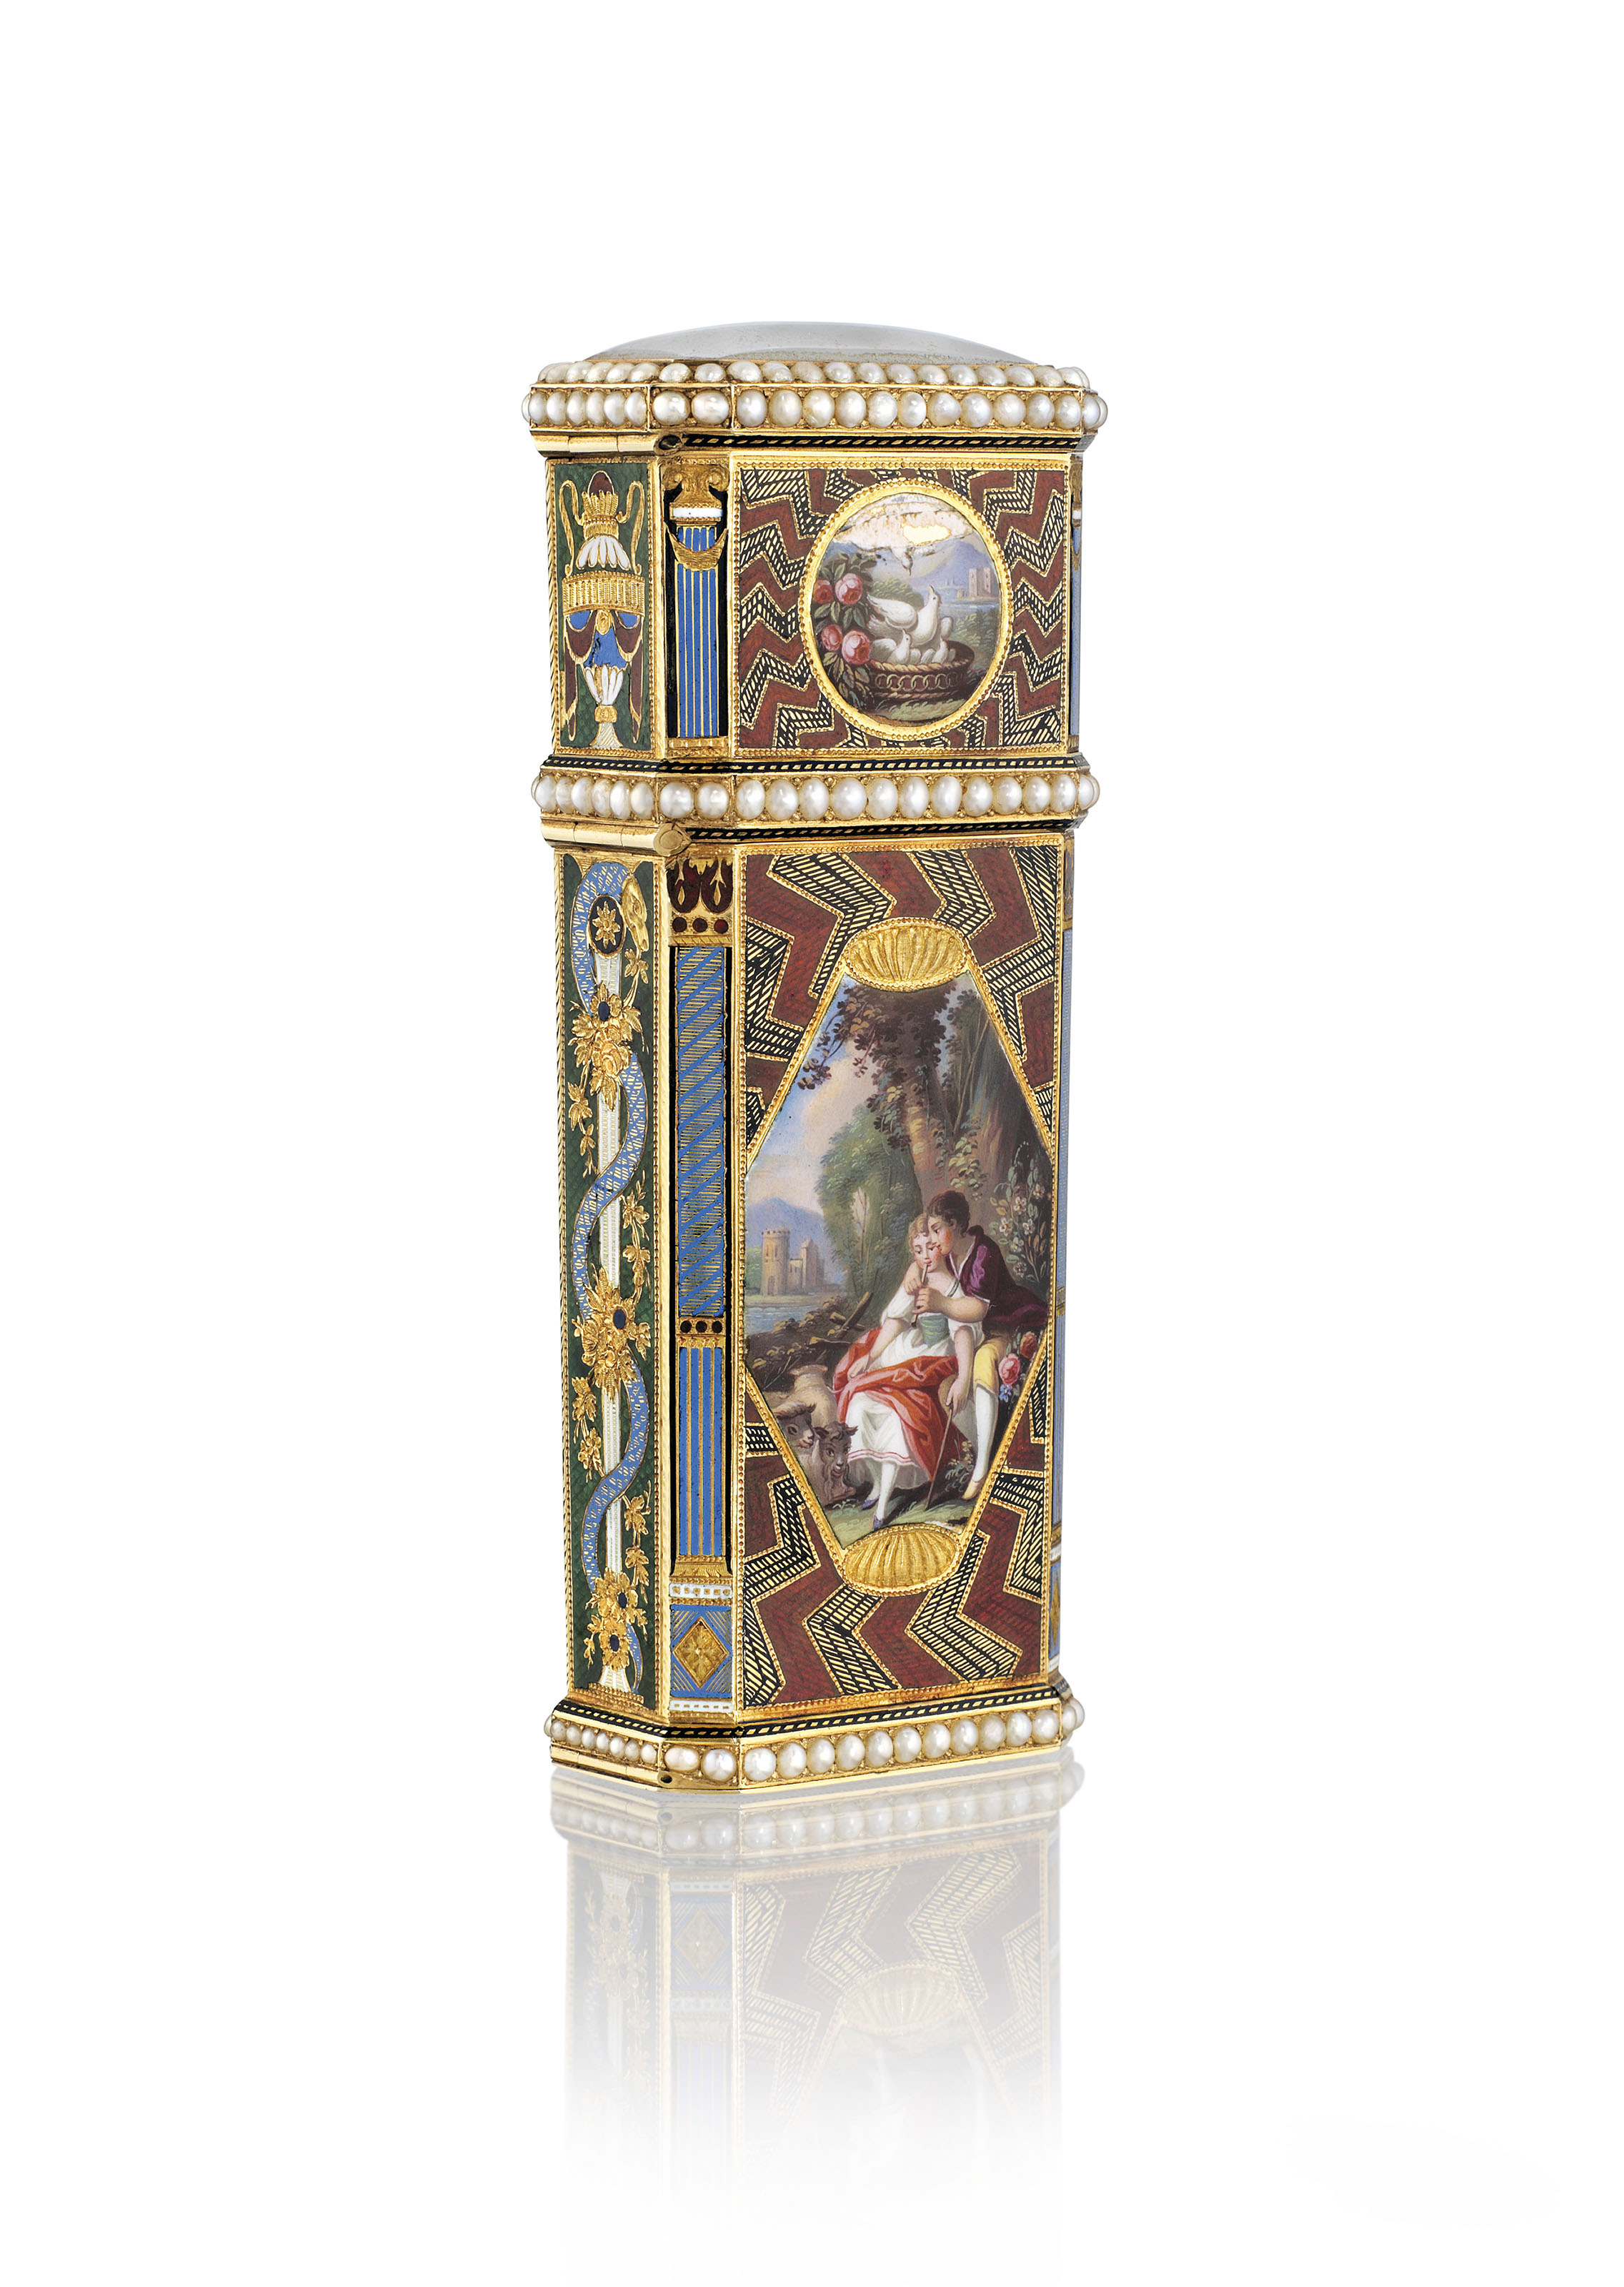 A SWISS JEWELLED ENAMELLED MUSICAL GOLD NECESSAIRE SET WITH A WATCH AND AN AUTOMATON